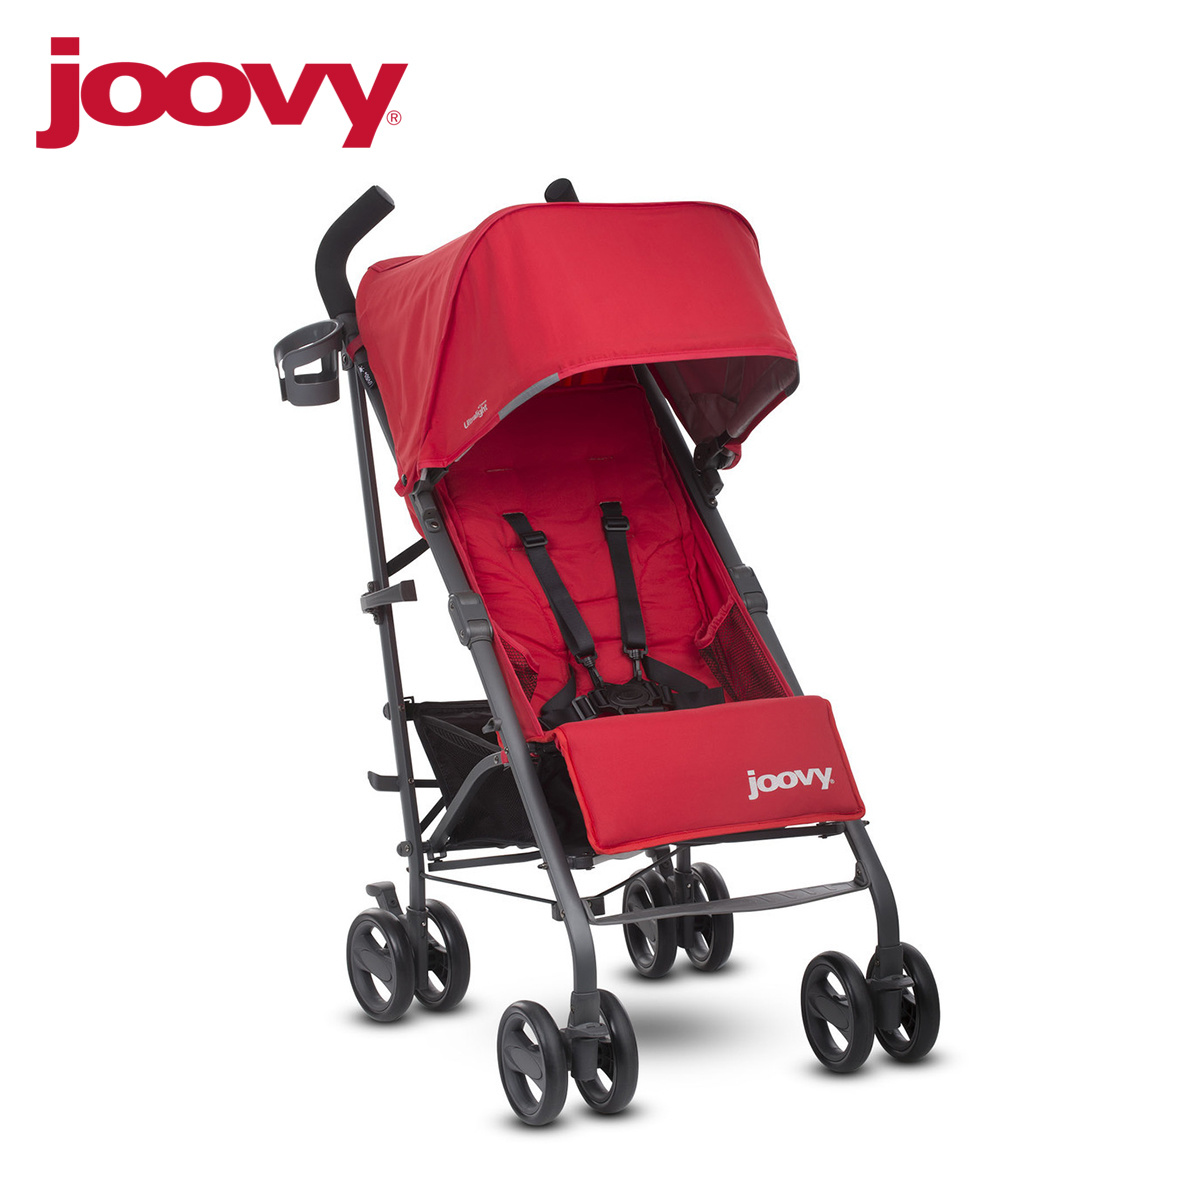 Newborn Umbrella Stroller Qoo10 Sg Sg No 1 Shopping Destination